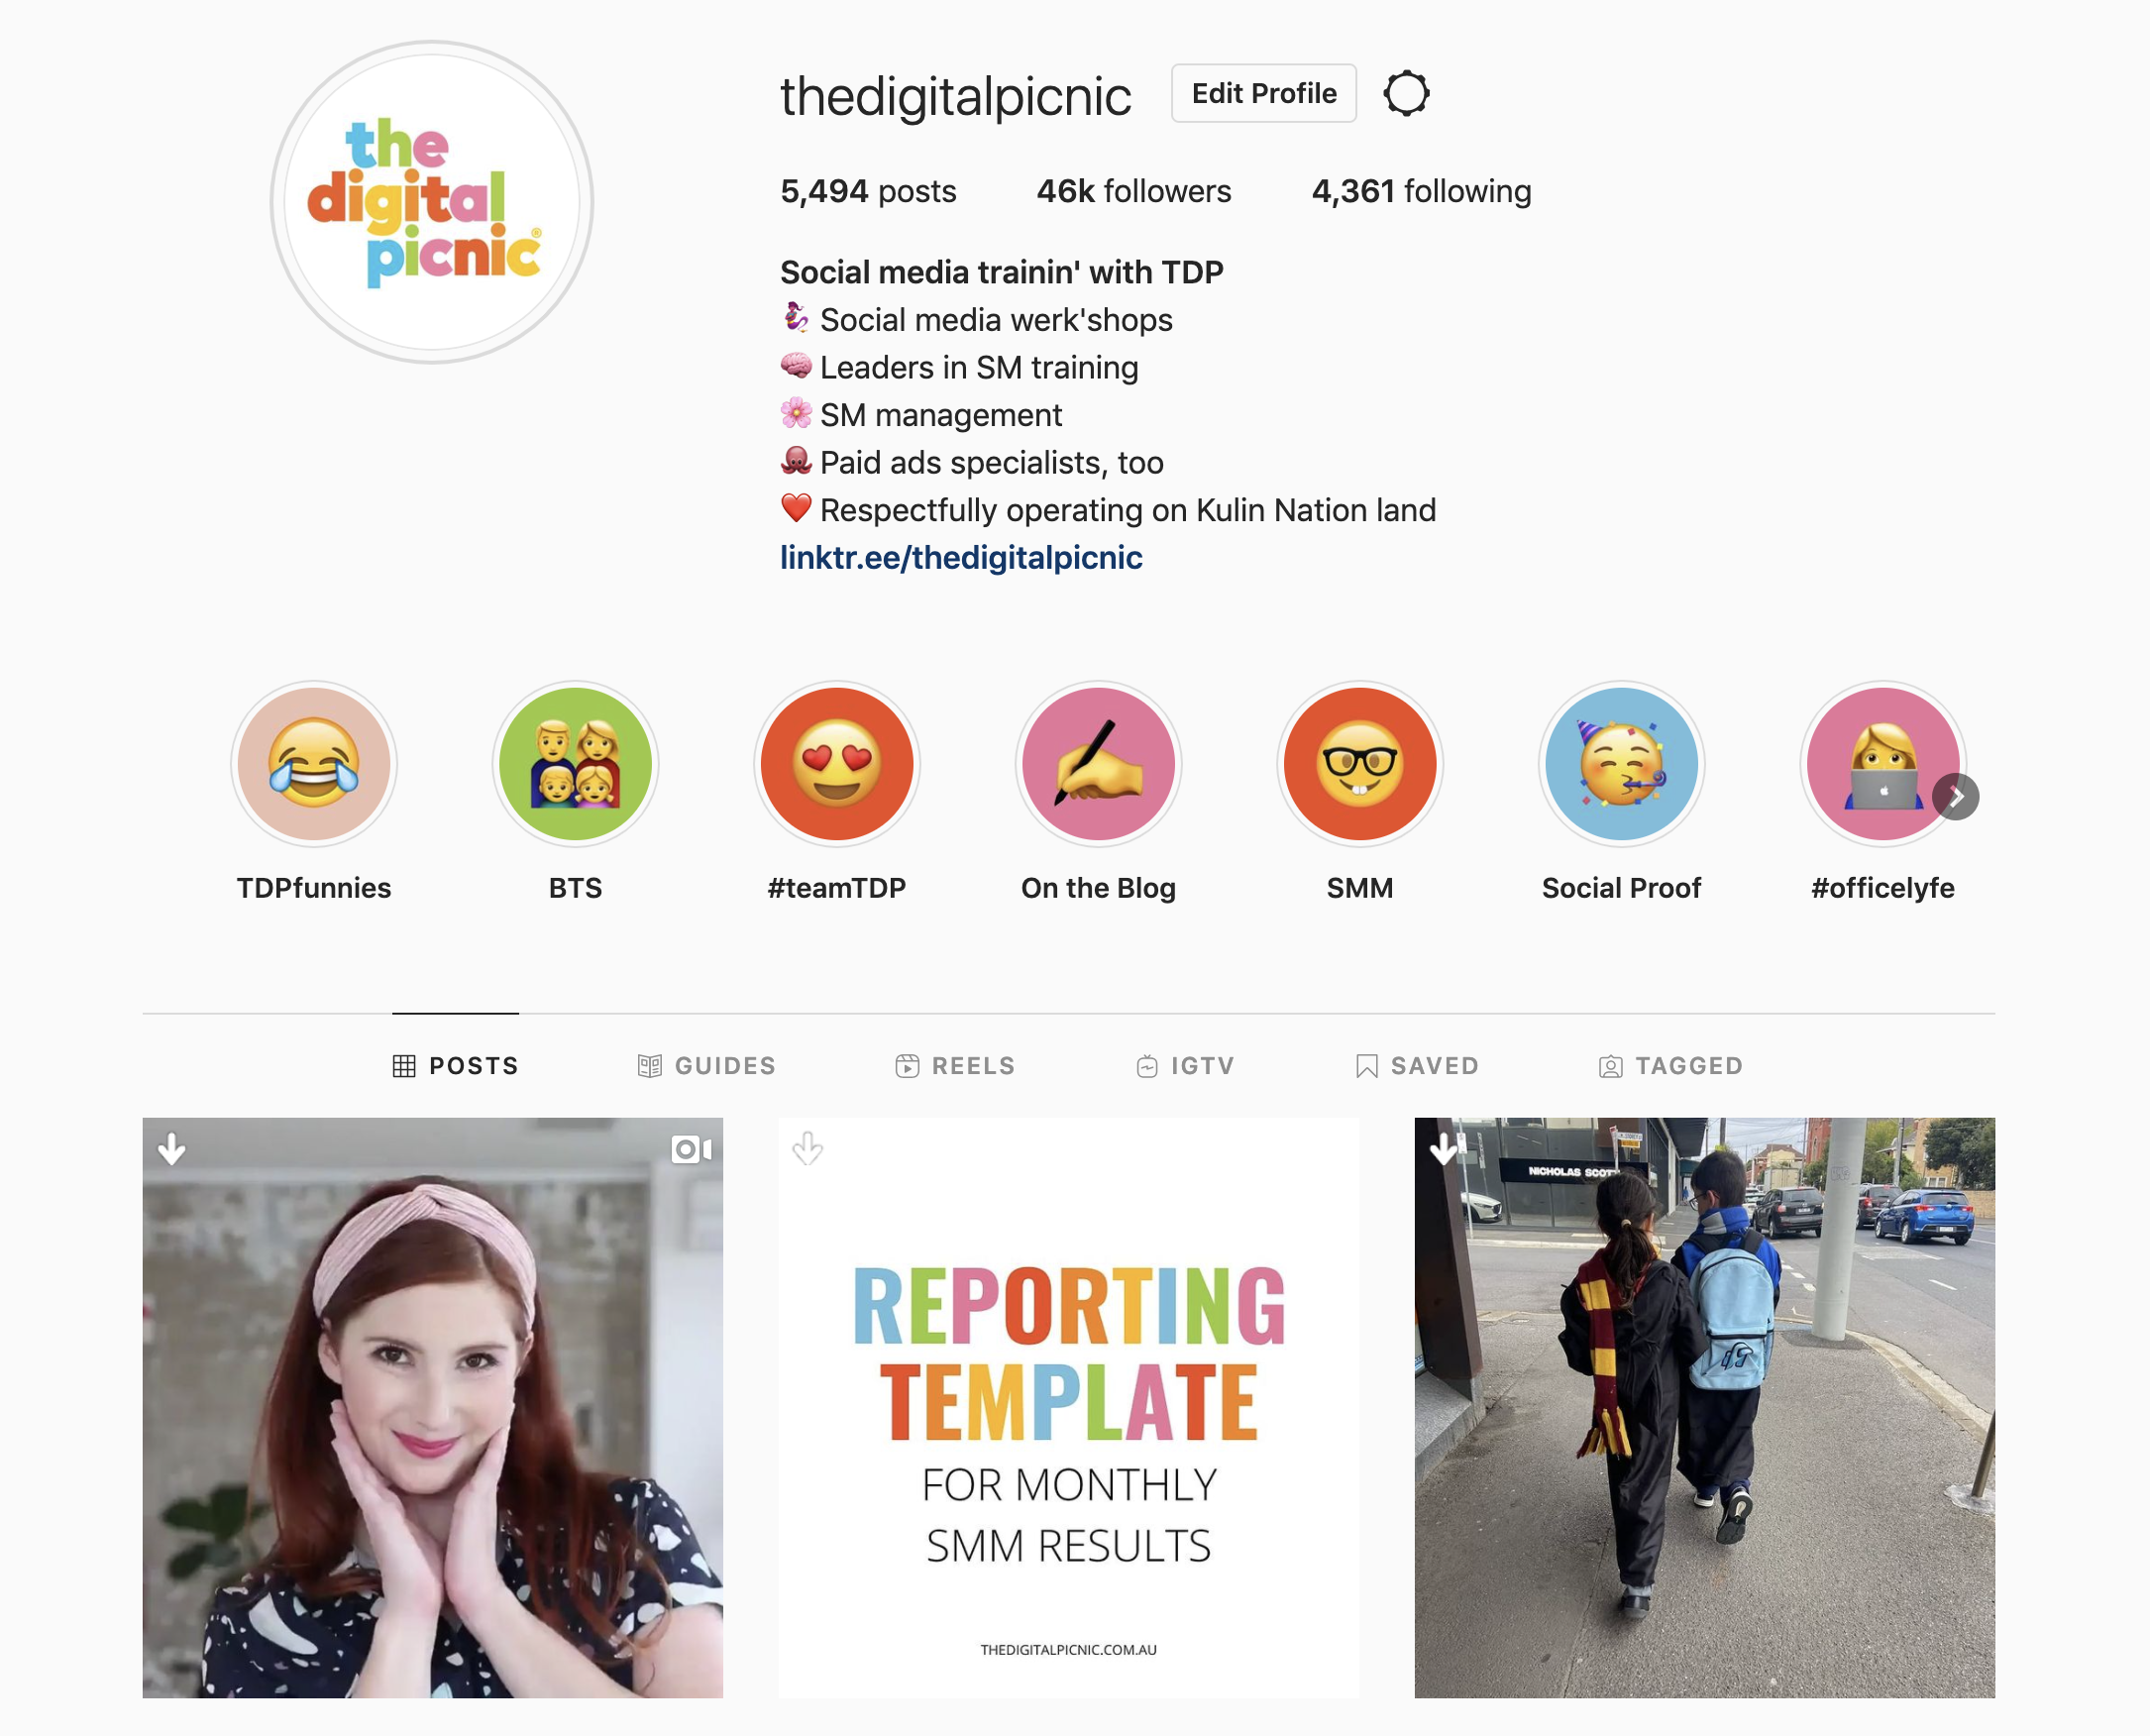 screenshot of our instagram feed, showing our logo, instagram bio and top 3 most recent posts